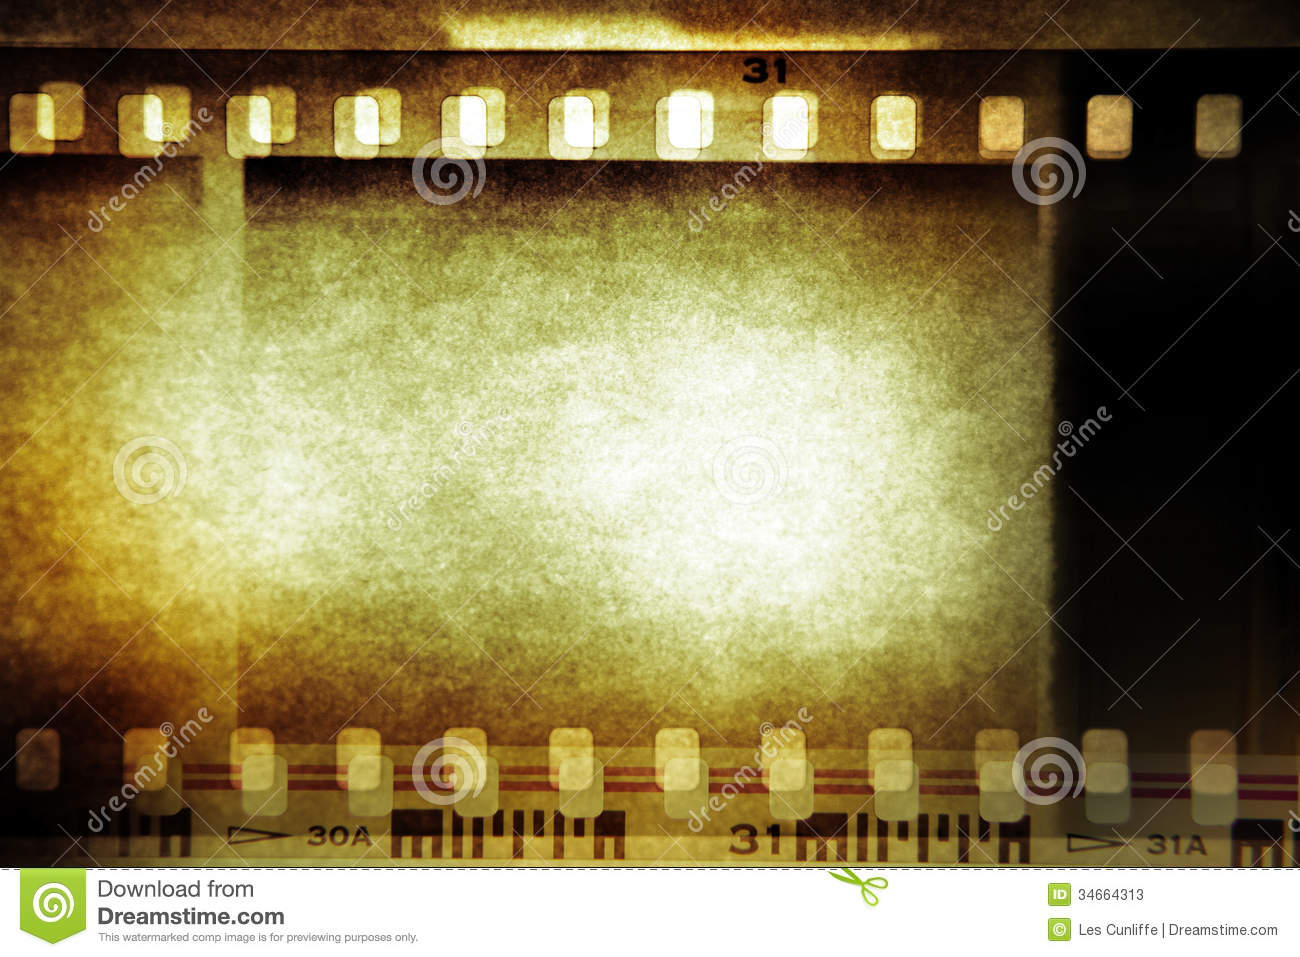 Filmstrip Stock Photos - Image: 34664313